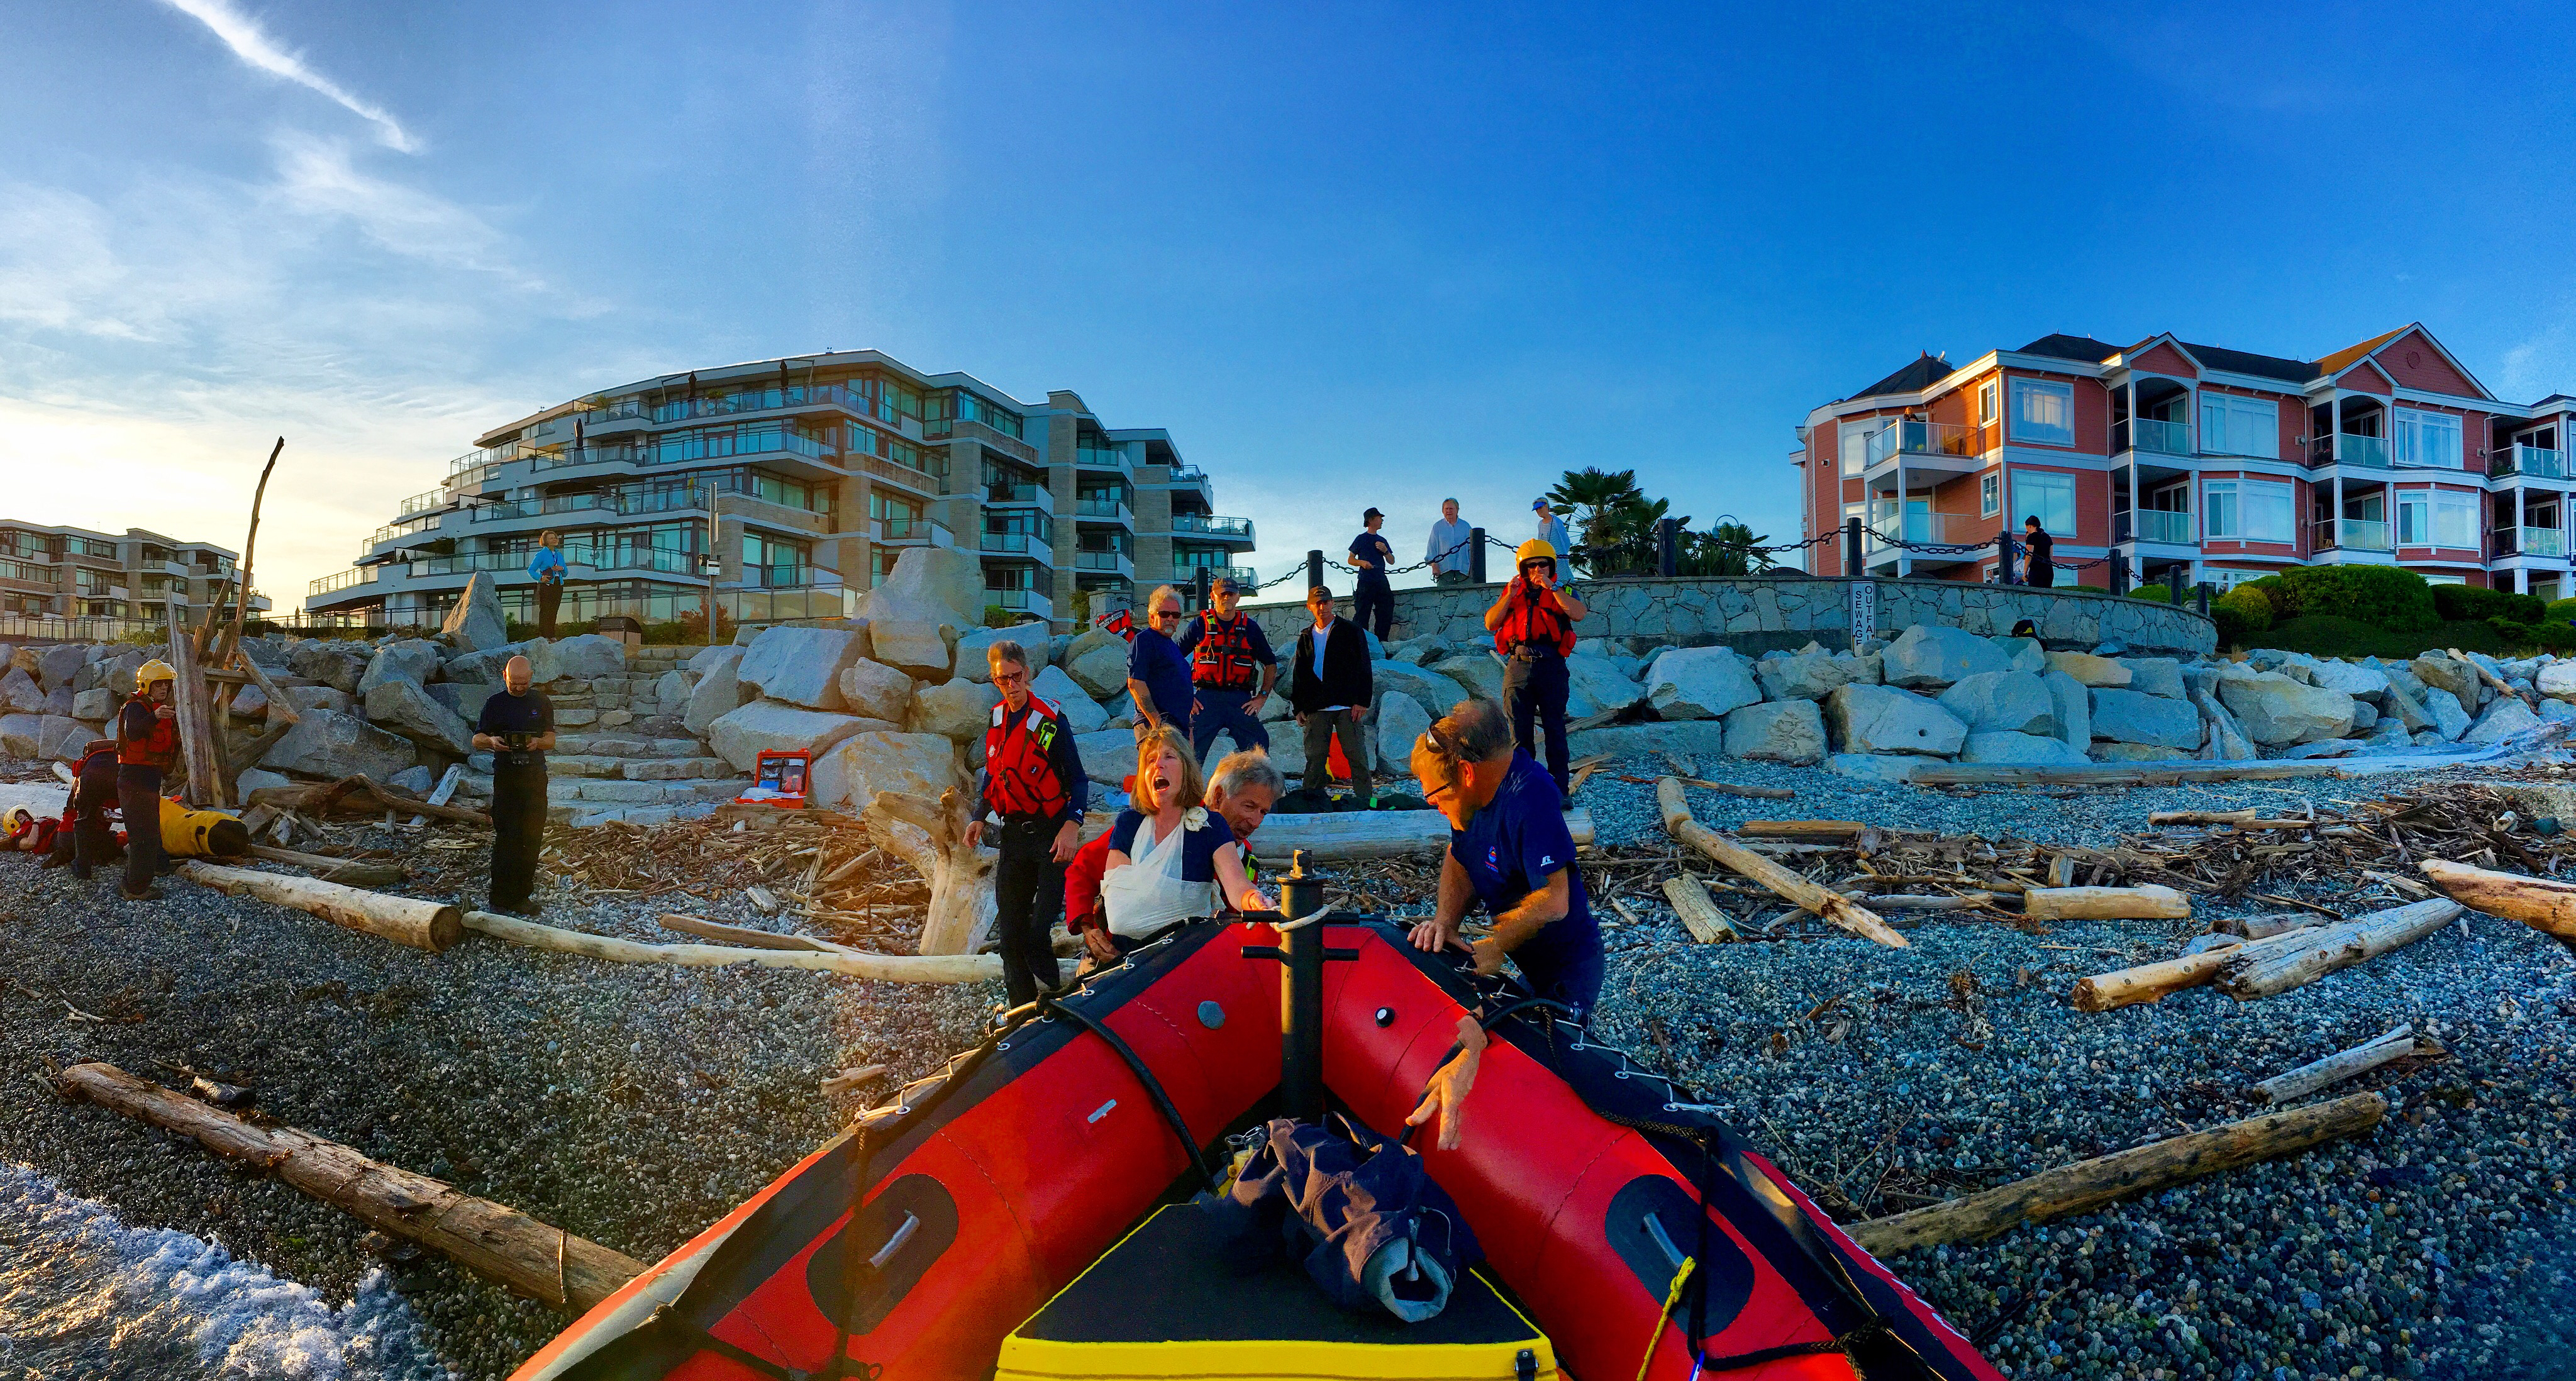 News Rcmsar Station 12 Halfmoon Bay How To Build Whistle Responder Join A Dedicated Marine Search And Rescue Team